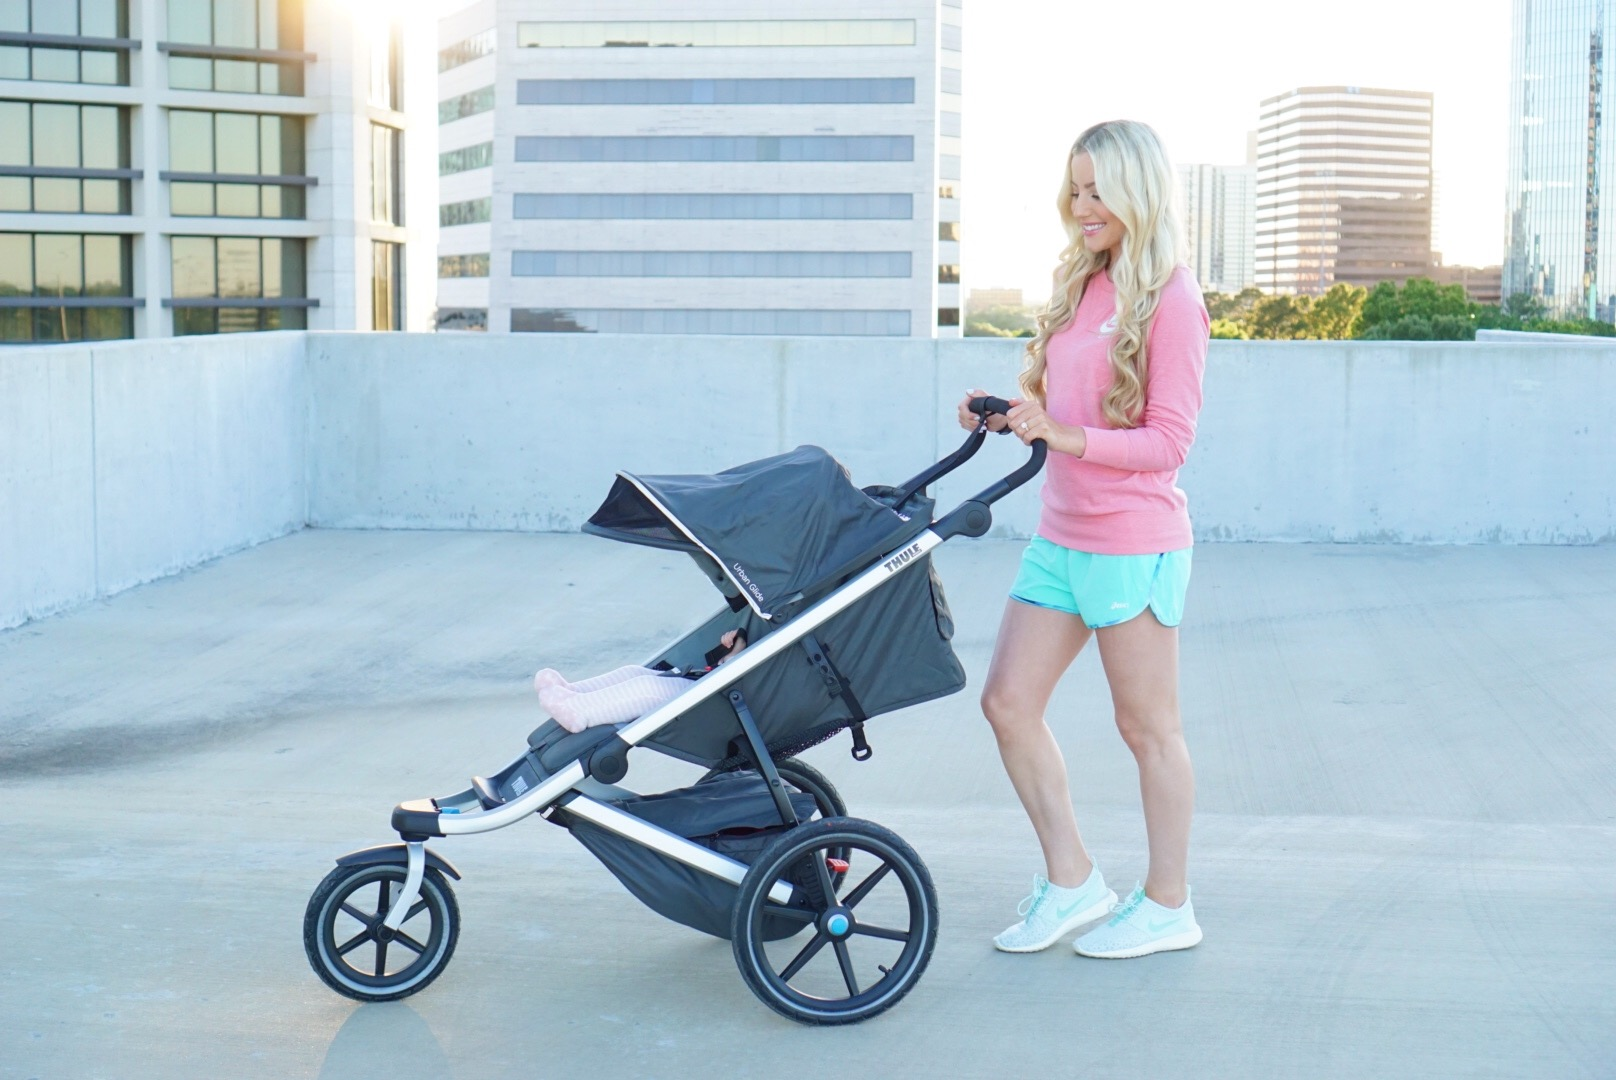 Katelyn Jones A Touch of Pink Fitness Routine Thule Jogging Pram